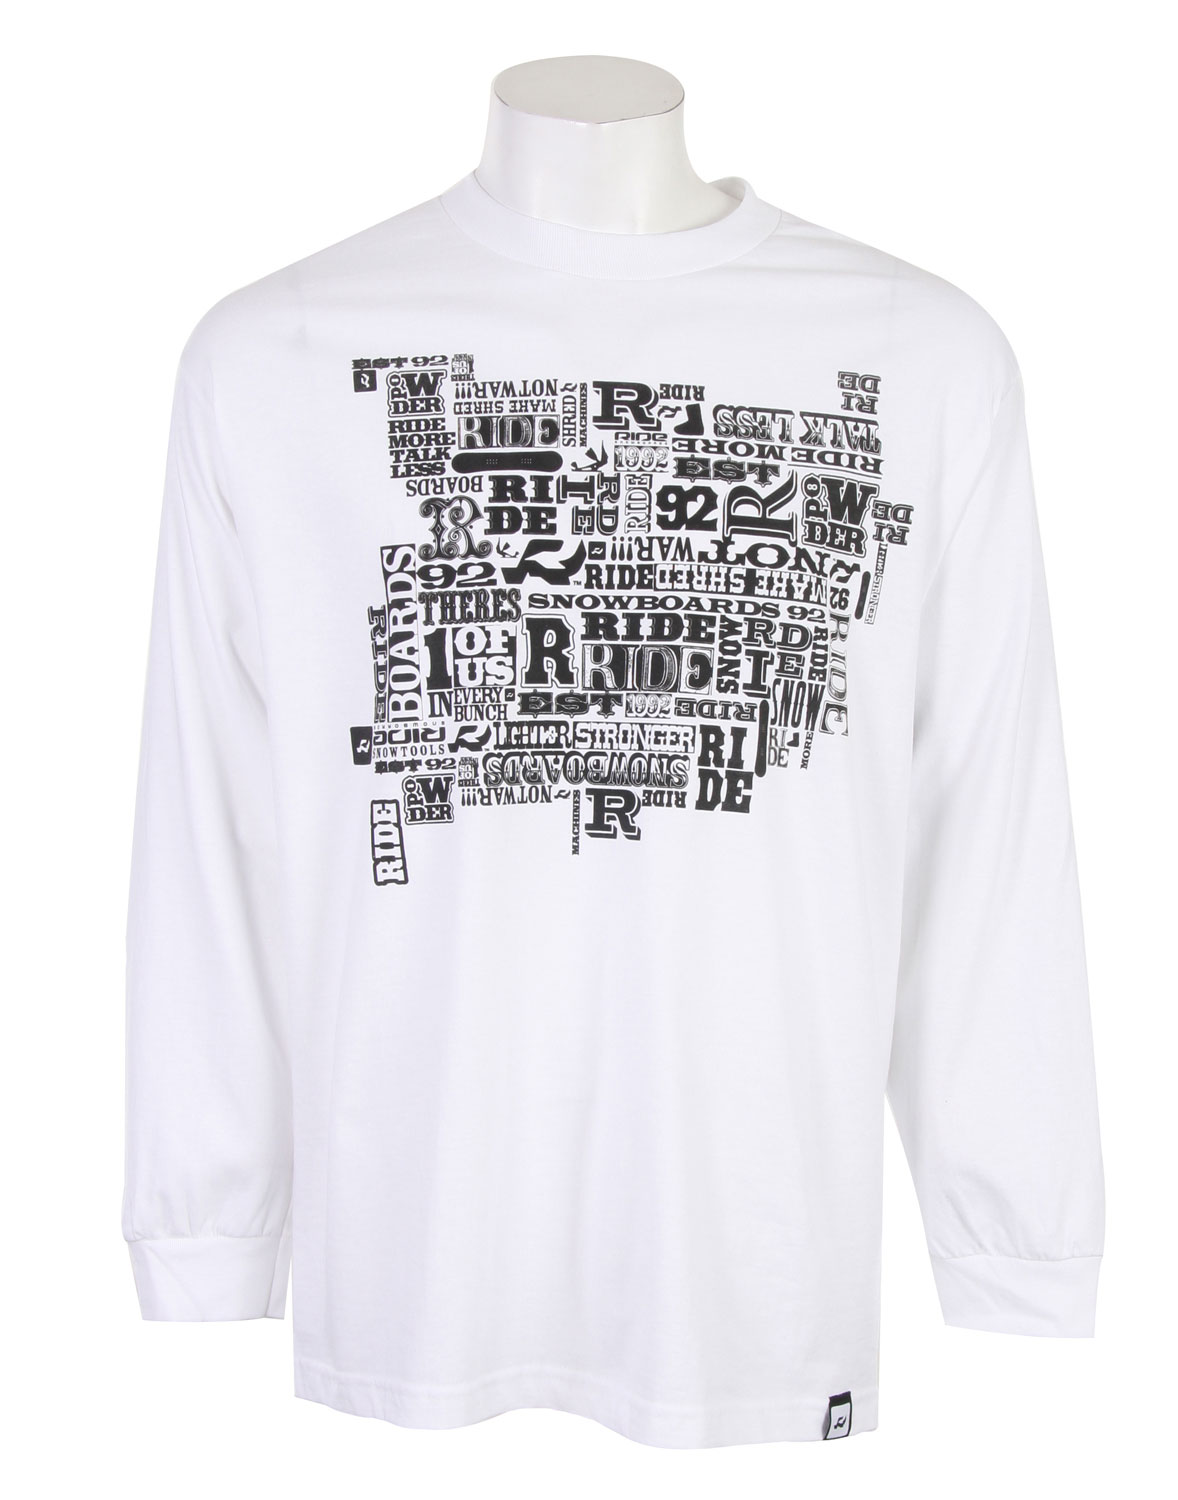 "Ride rocked the art on this long-sleeved shirt. The word ""ride"" and variations on that theme are locked together in varying fonts and orientations across the chest, leaving the impression of an exciting ride yet to come. An embroidered tag on the right hem hip also represents this boarding company. A solid, simple long sleeved shirt is an essential under layer for many athletic pursuits. Why not use your base layer to represent your favorite boarding company? - $12.35"